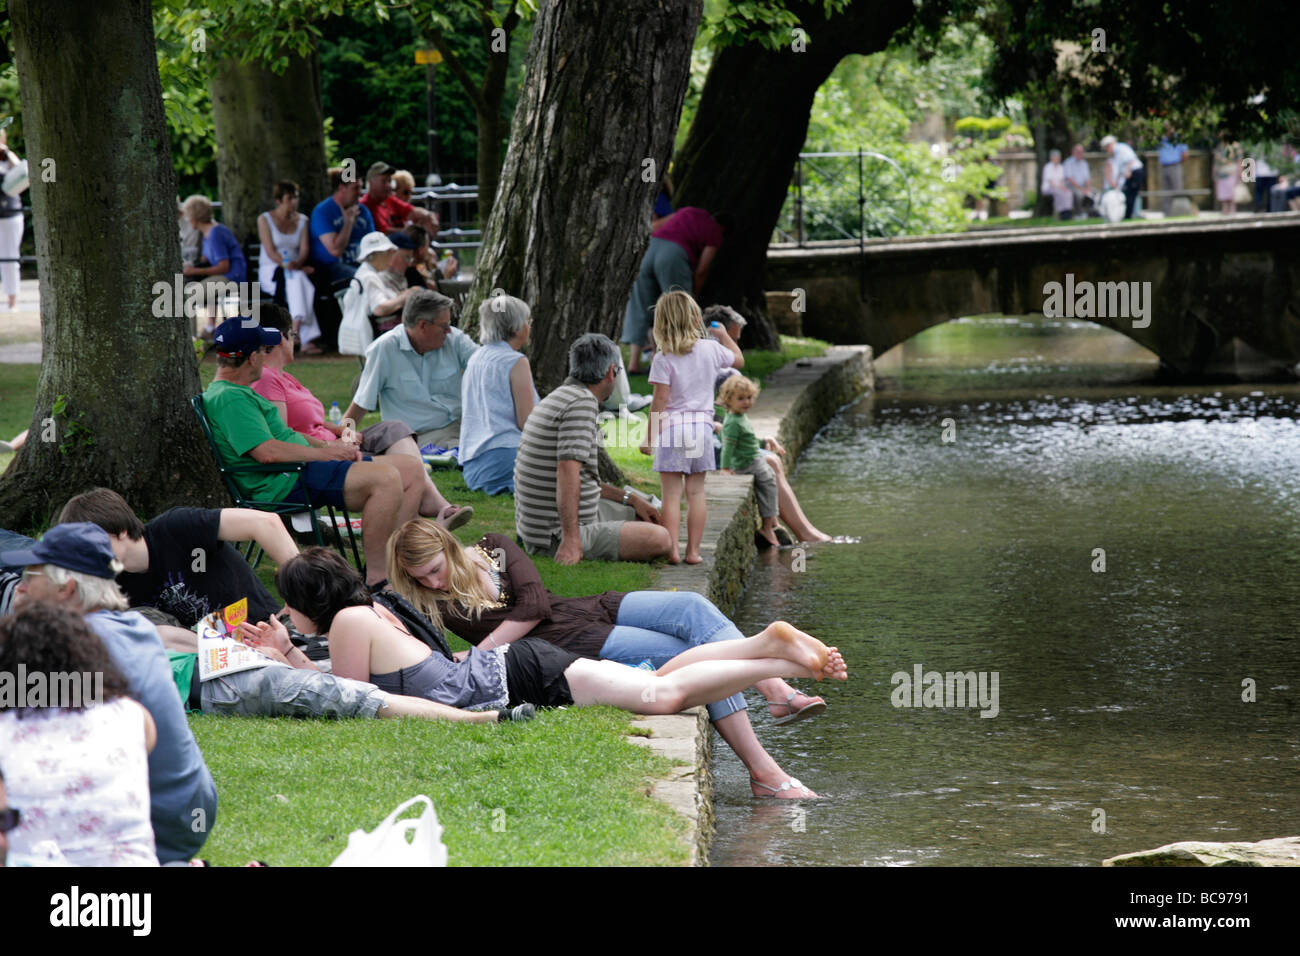 People sunbathing on the banks of the River Windrush in Bourton-on-the-Water, Gloucestershire, UK - Stock Image